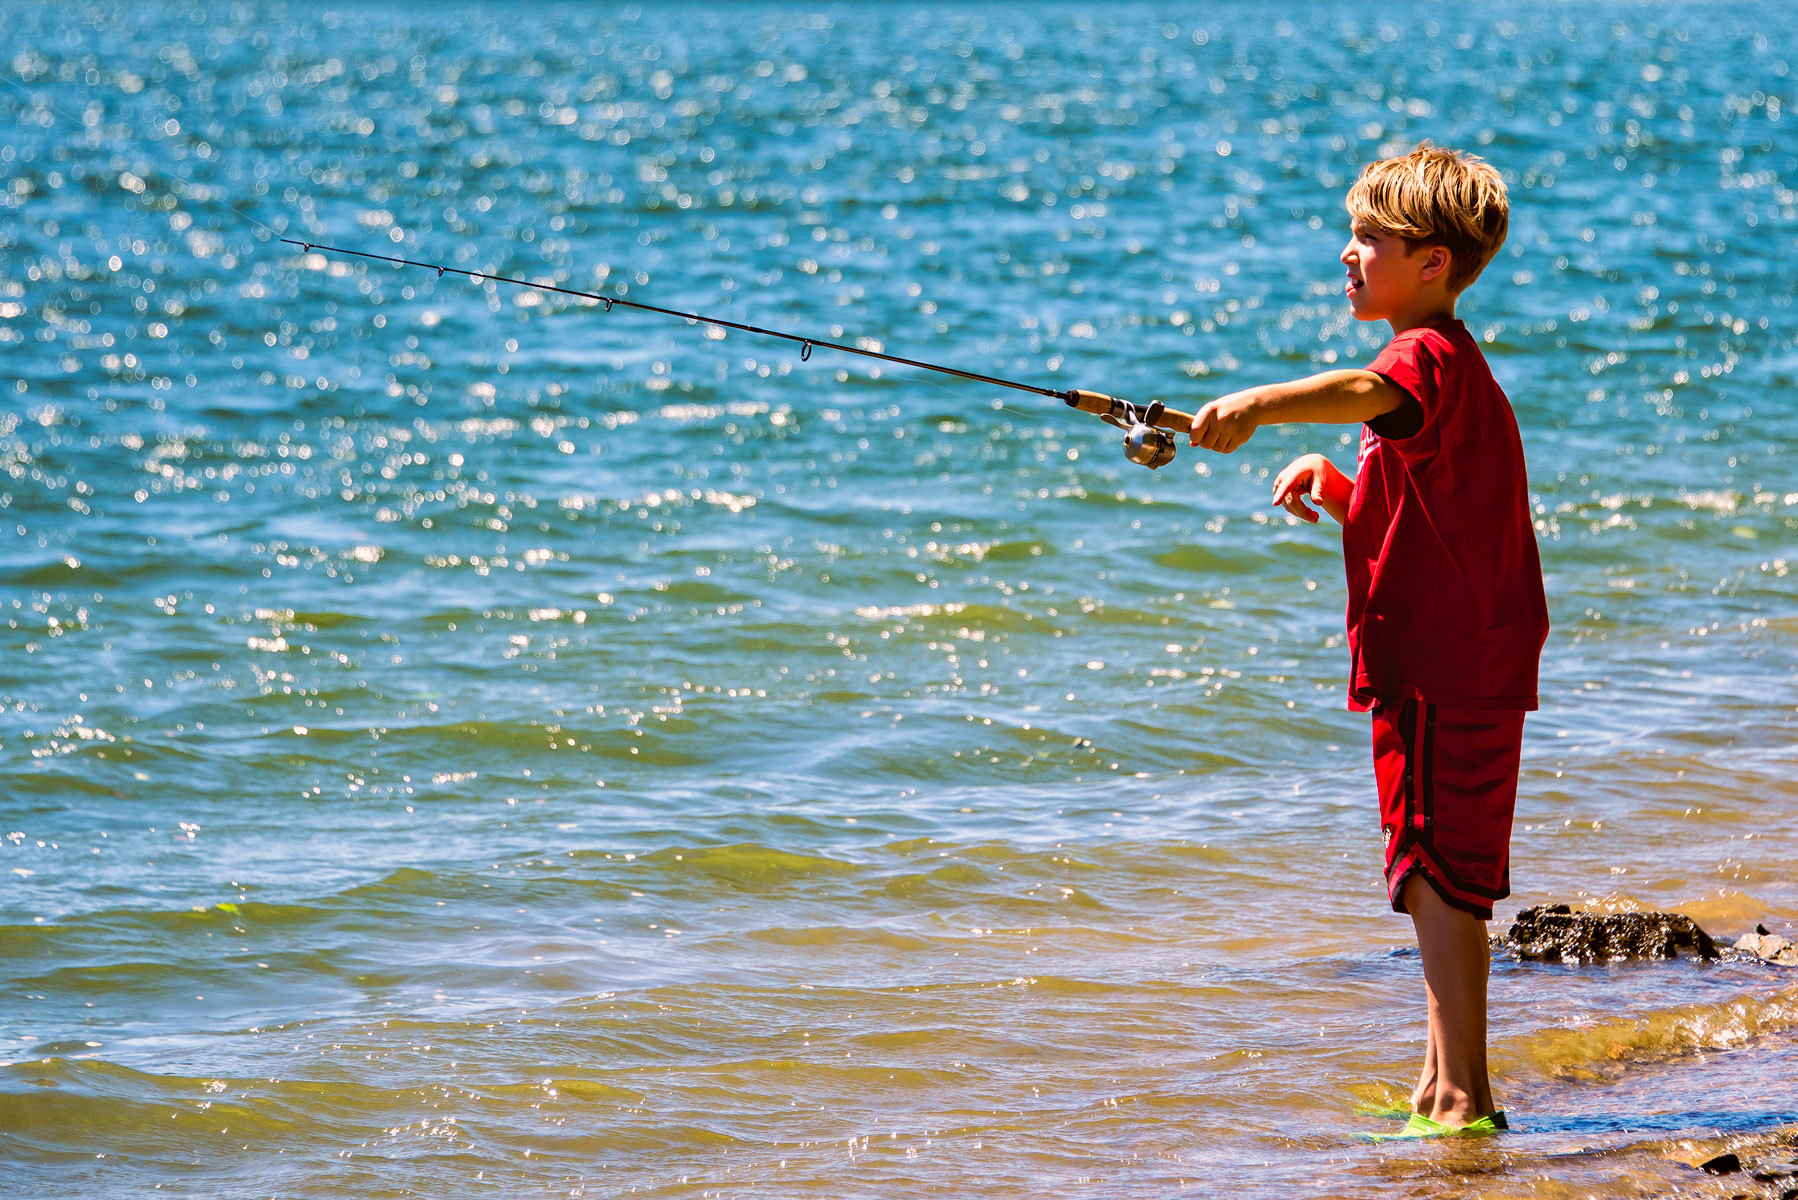 Little boy in red fishing with fishing rod